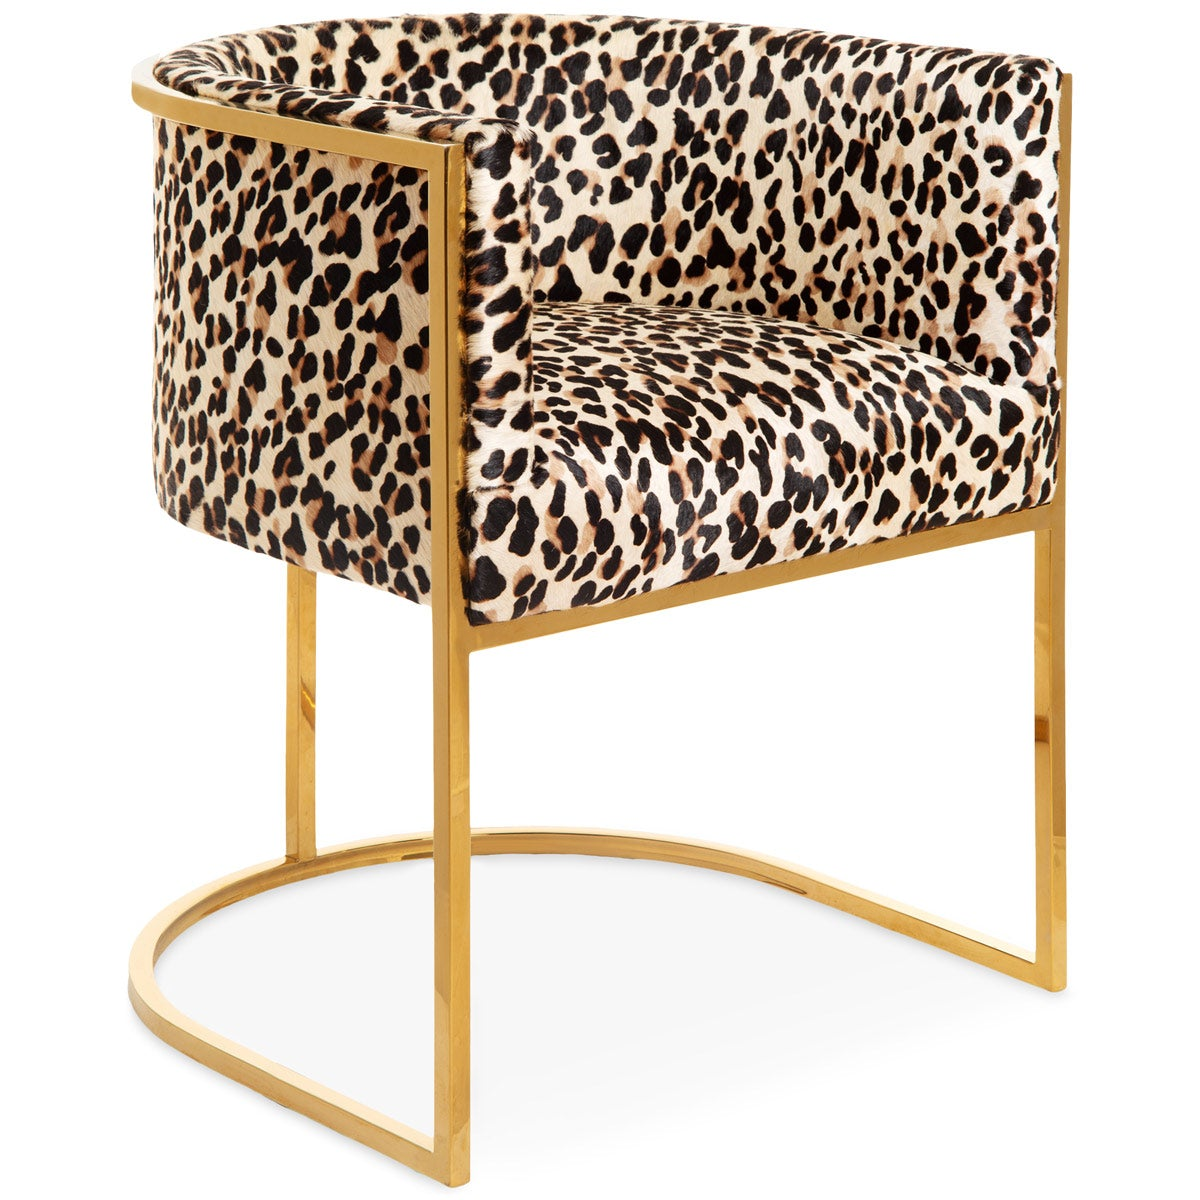 Wondrous Lisbon Dining Chair Modern Leopard Print On Cowhide Modshop Squirreltailoven Fun Painted Chair Ideas Images Squirreltailovenorg